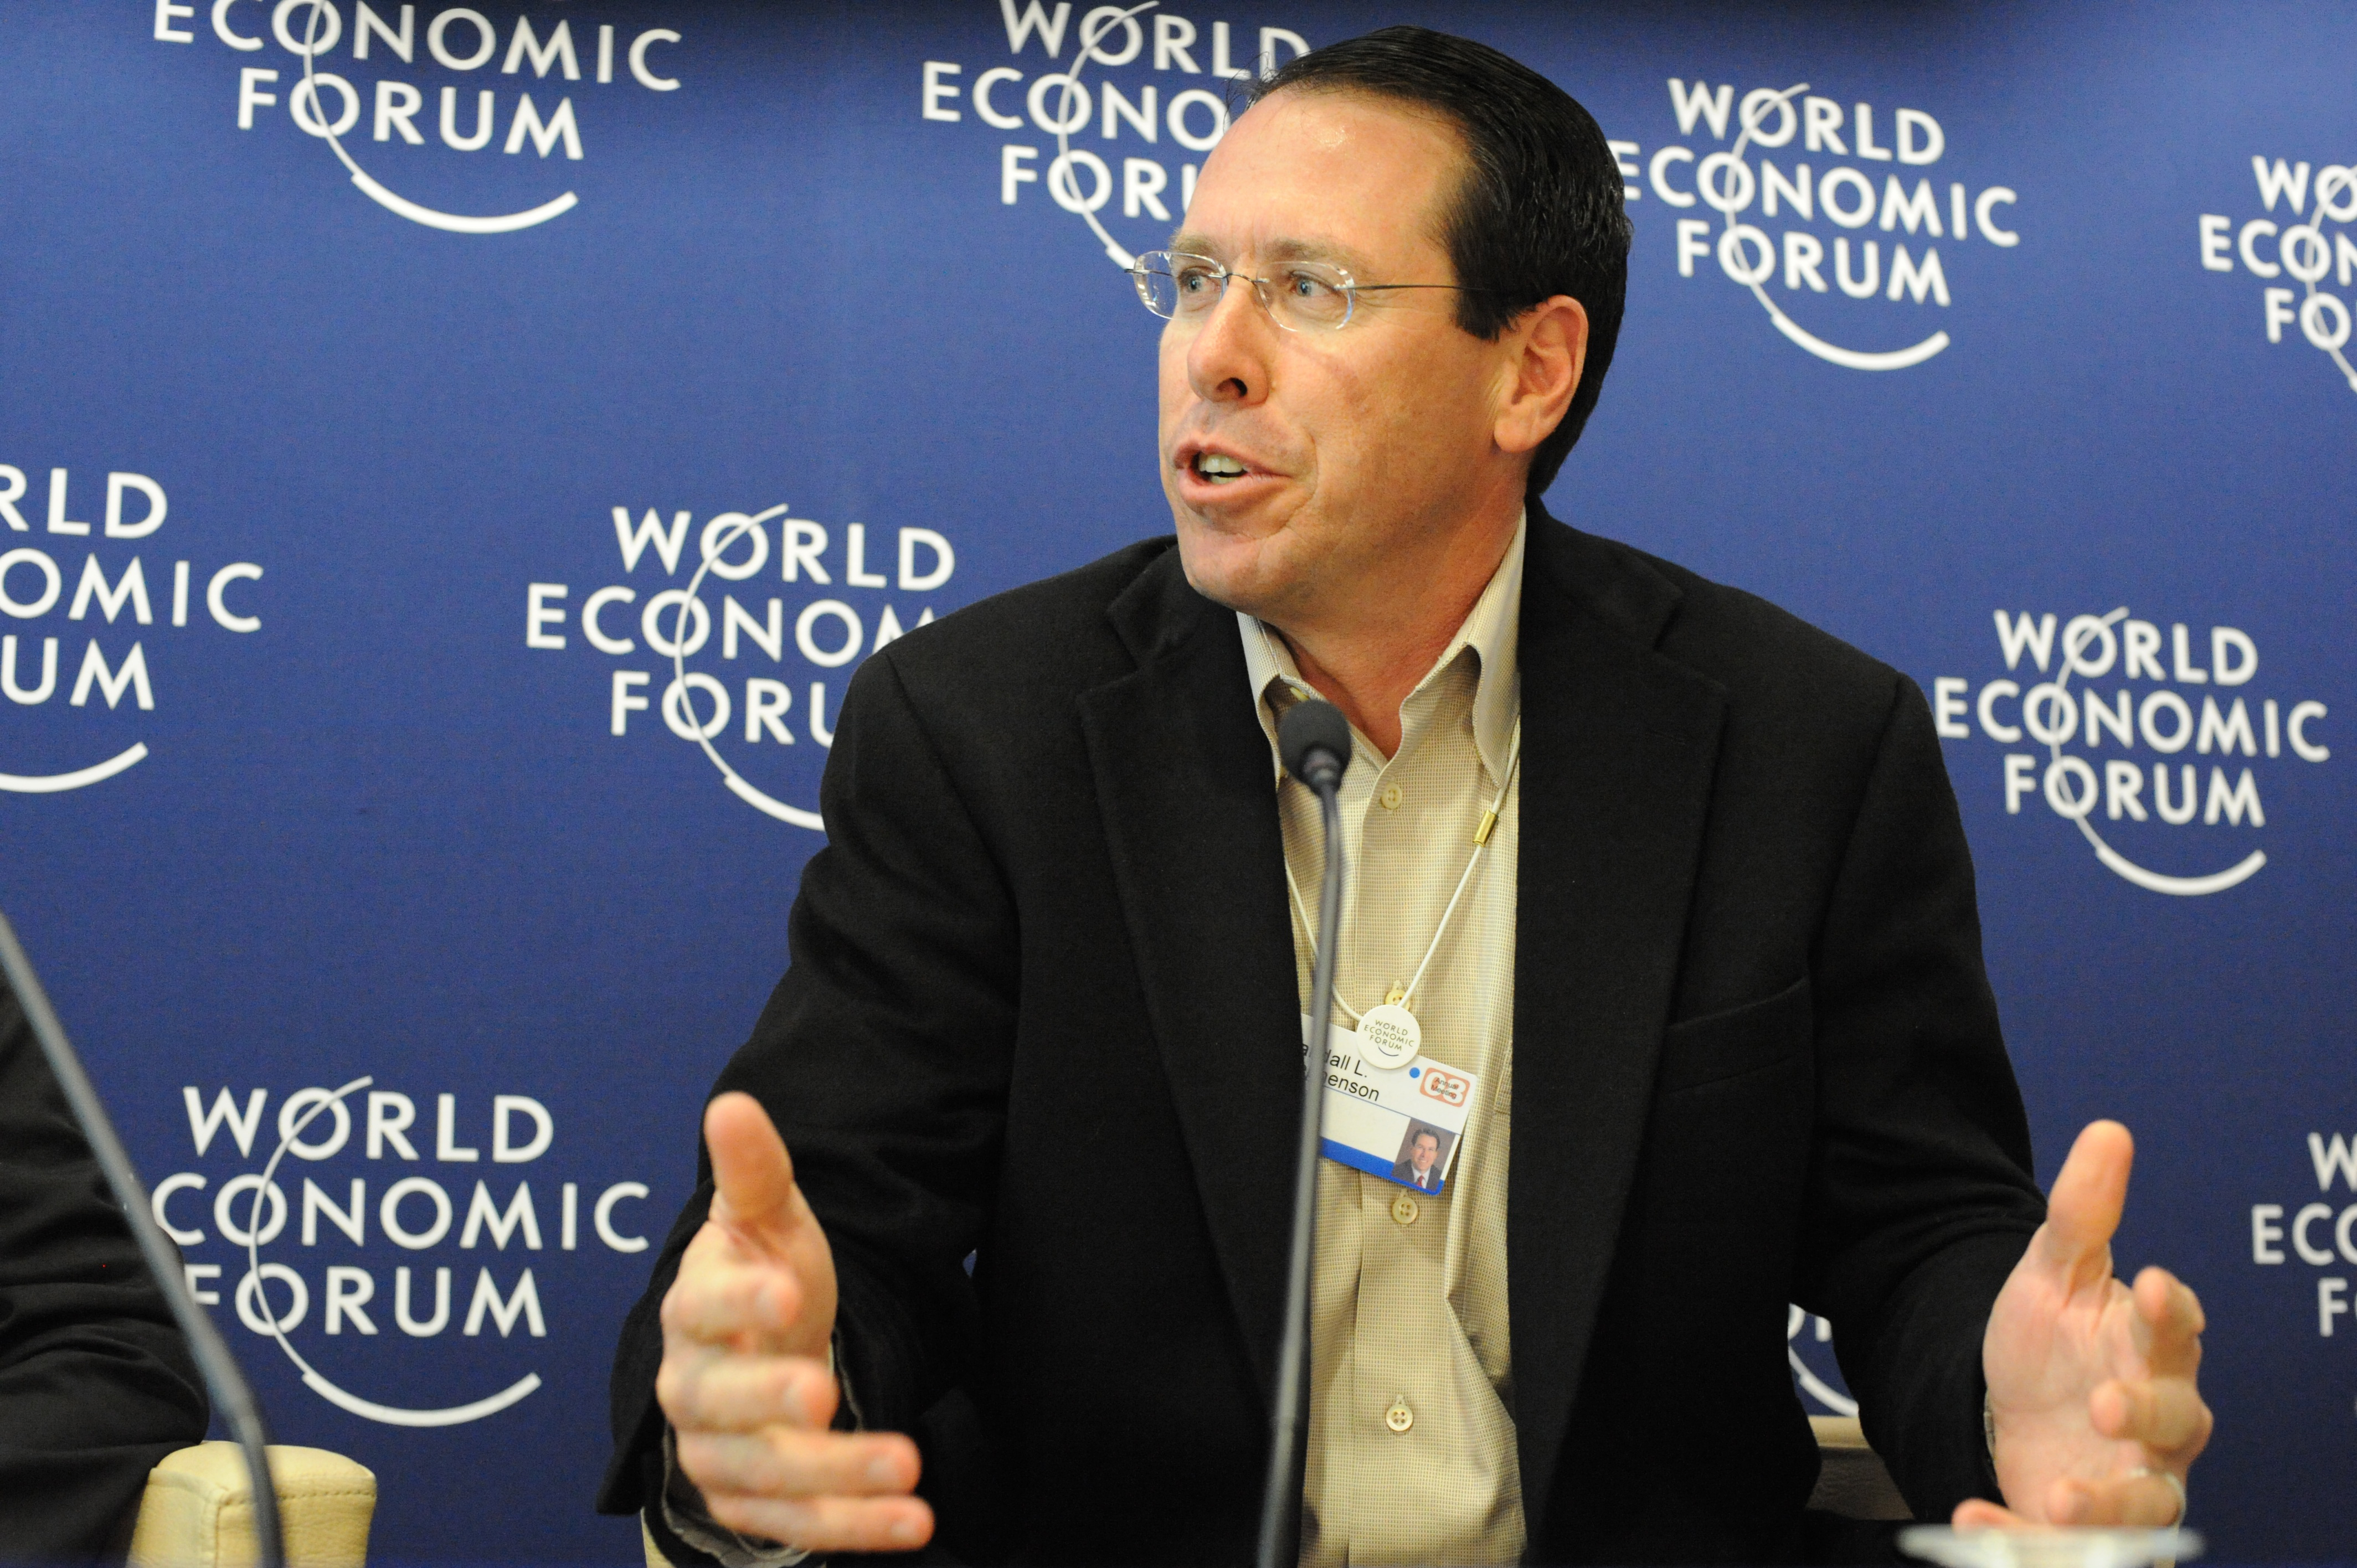 AT&T's CEO thinks Congress, not Silicon Valley and Apple, should make encryption policy